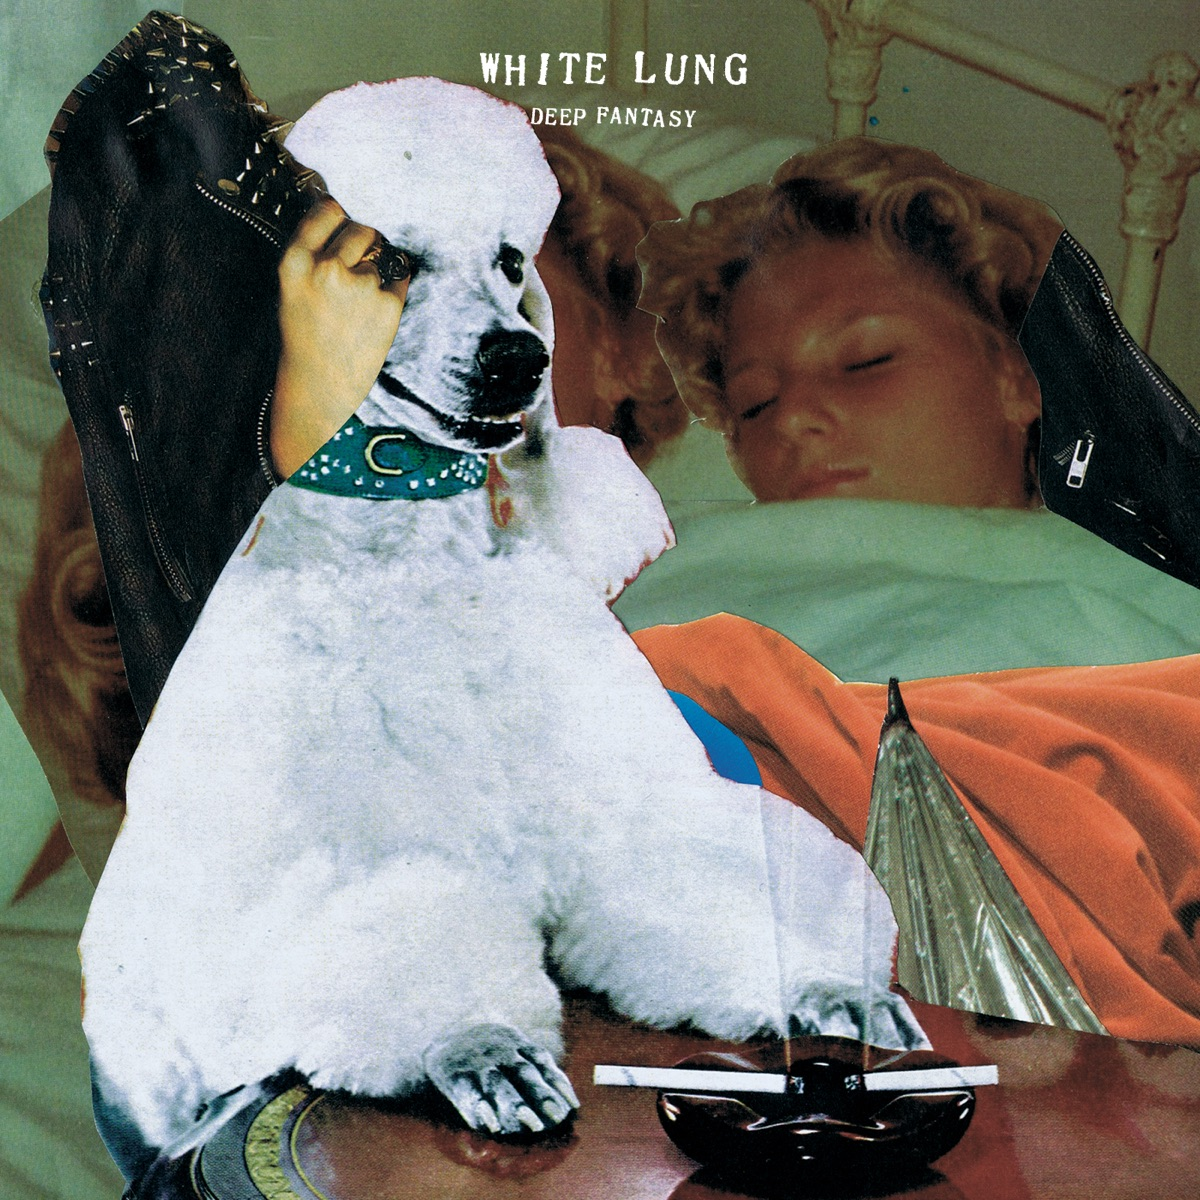 Deep Fantasy White Lung CD cover